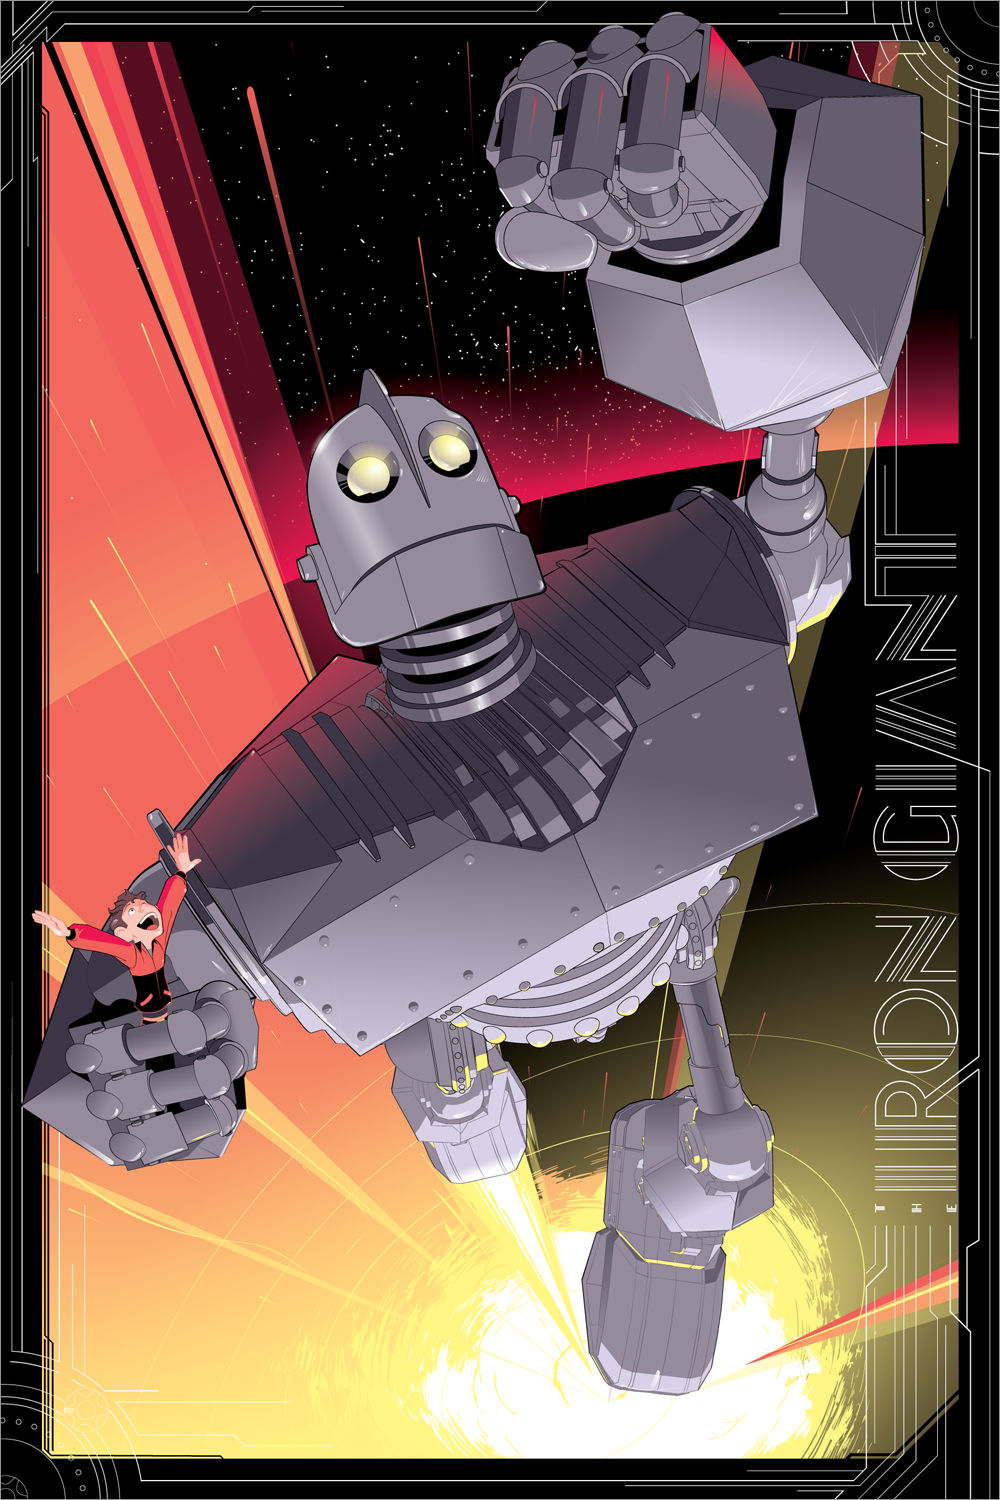 check-out-this-dynamic-poster-art-for-the-iron-giant-from-artist-craig-drake3